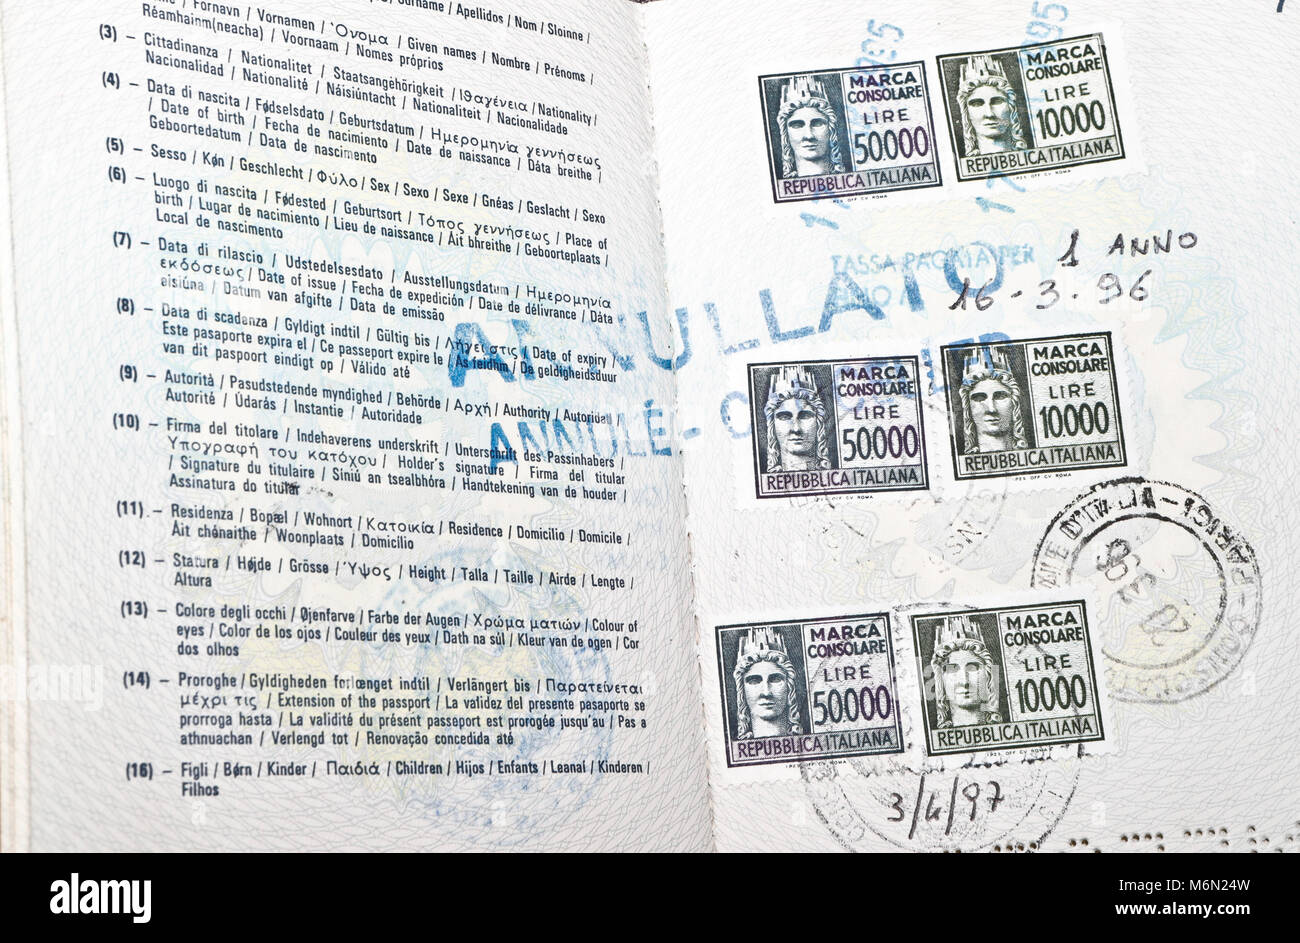 Inside cover of a Italian Passport with visa stamps Stock Photo